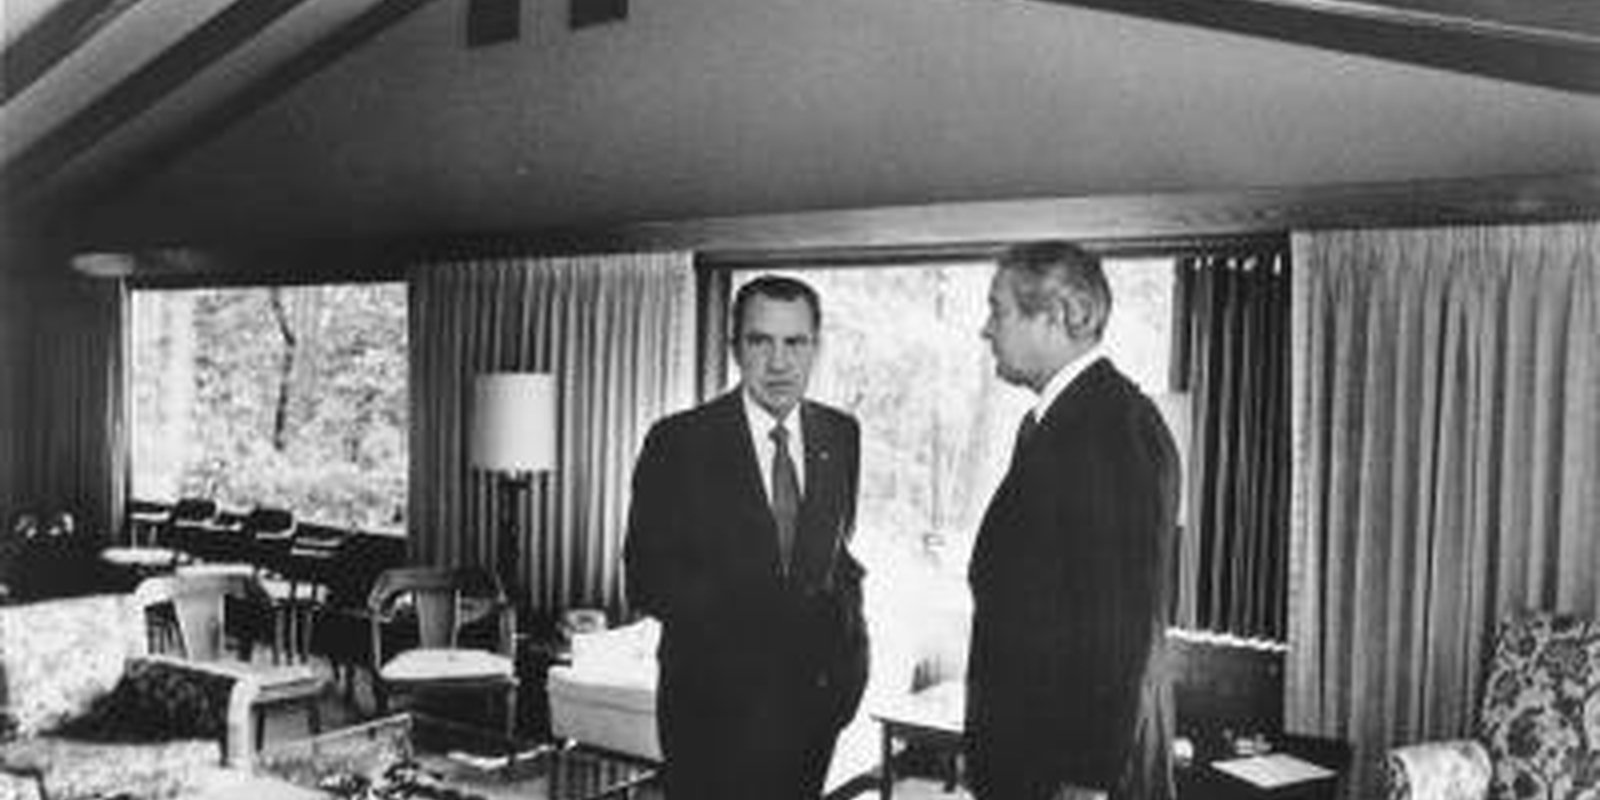 Image — President Richard Nixon and Treasury Secretary John Connally discuss new economic programmes for the United States atCamp David inMaryland, 1971. Photo by PhotoQuest/Getty Images.